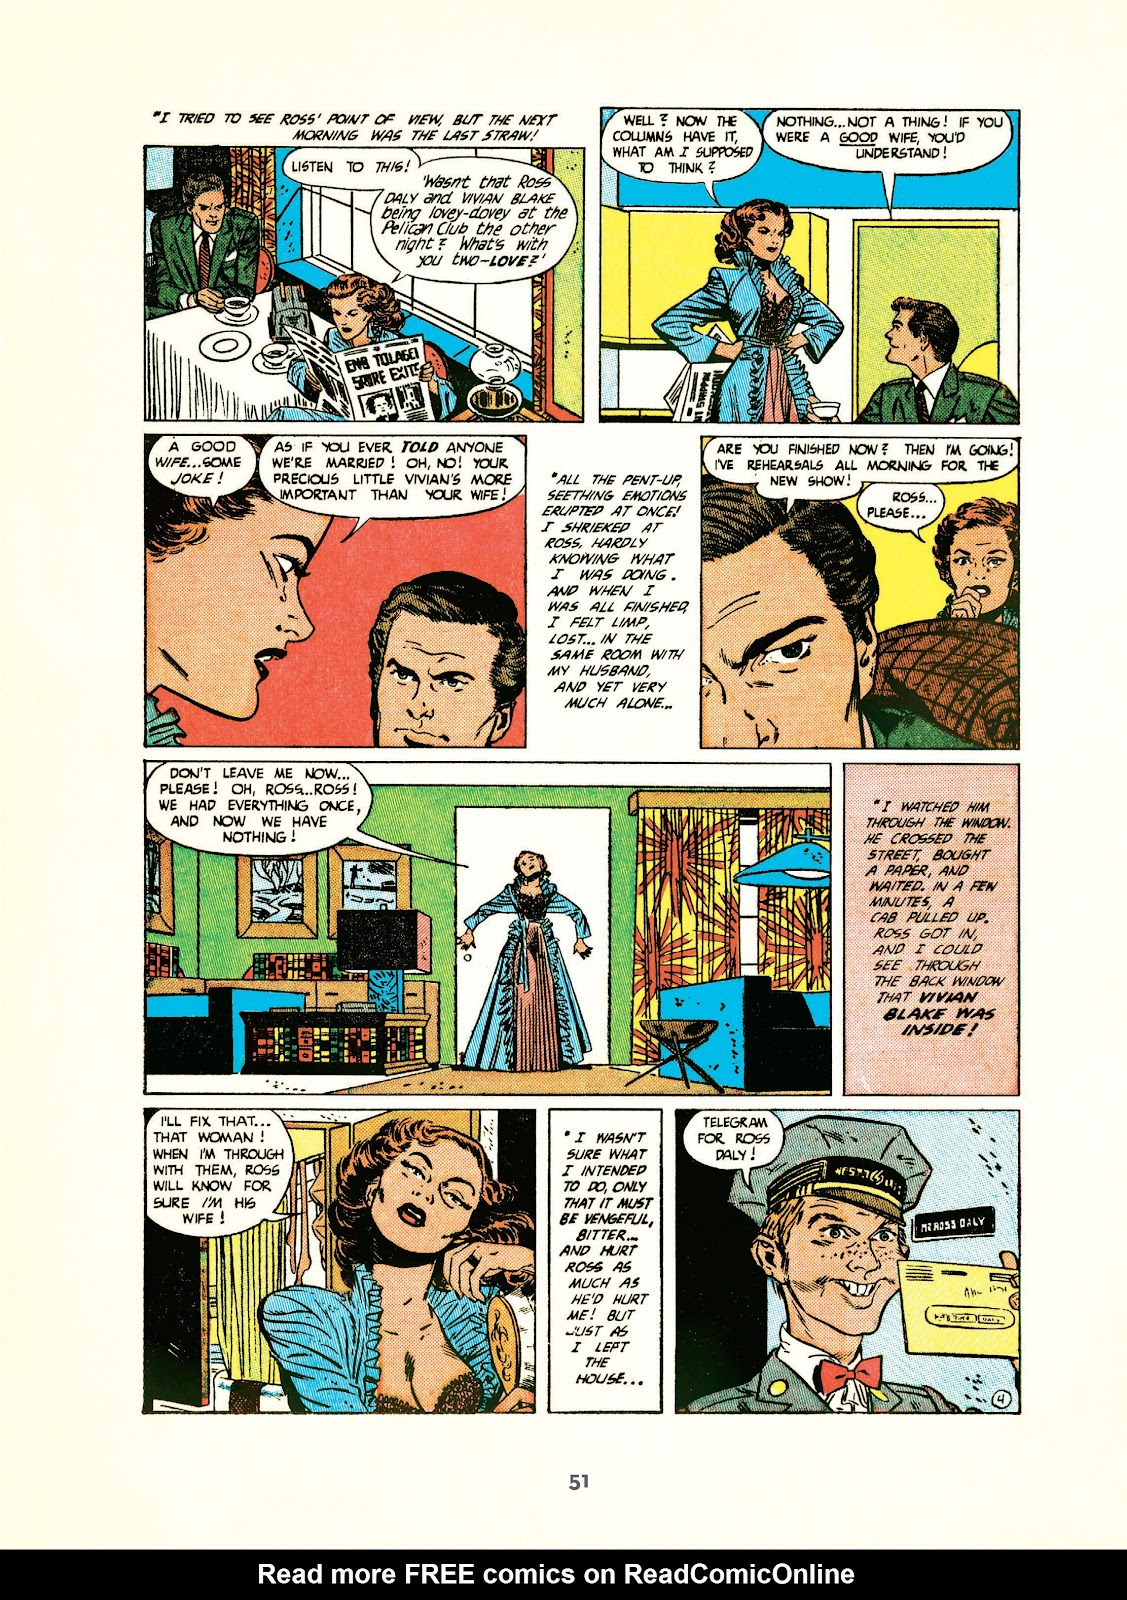 Read online Setting the Standard: Comics by Alex Toth 1952-1954 comic -  Issue # TPB (Part 1) - 50